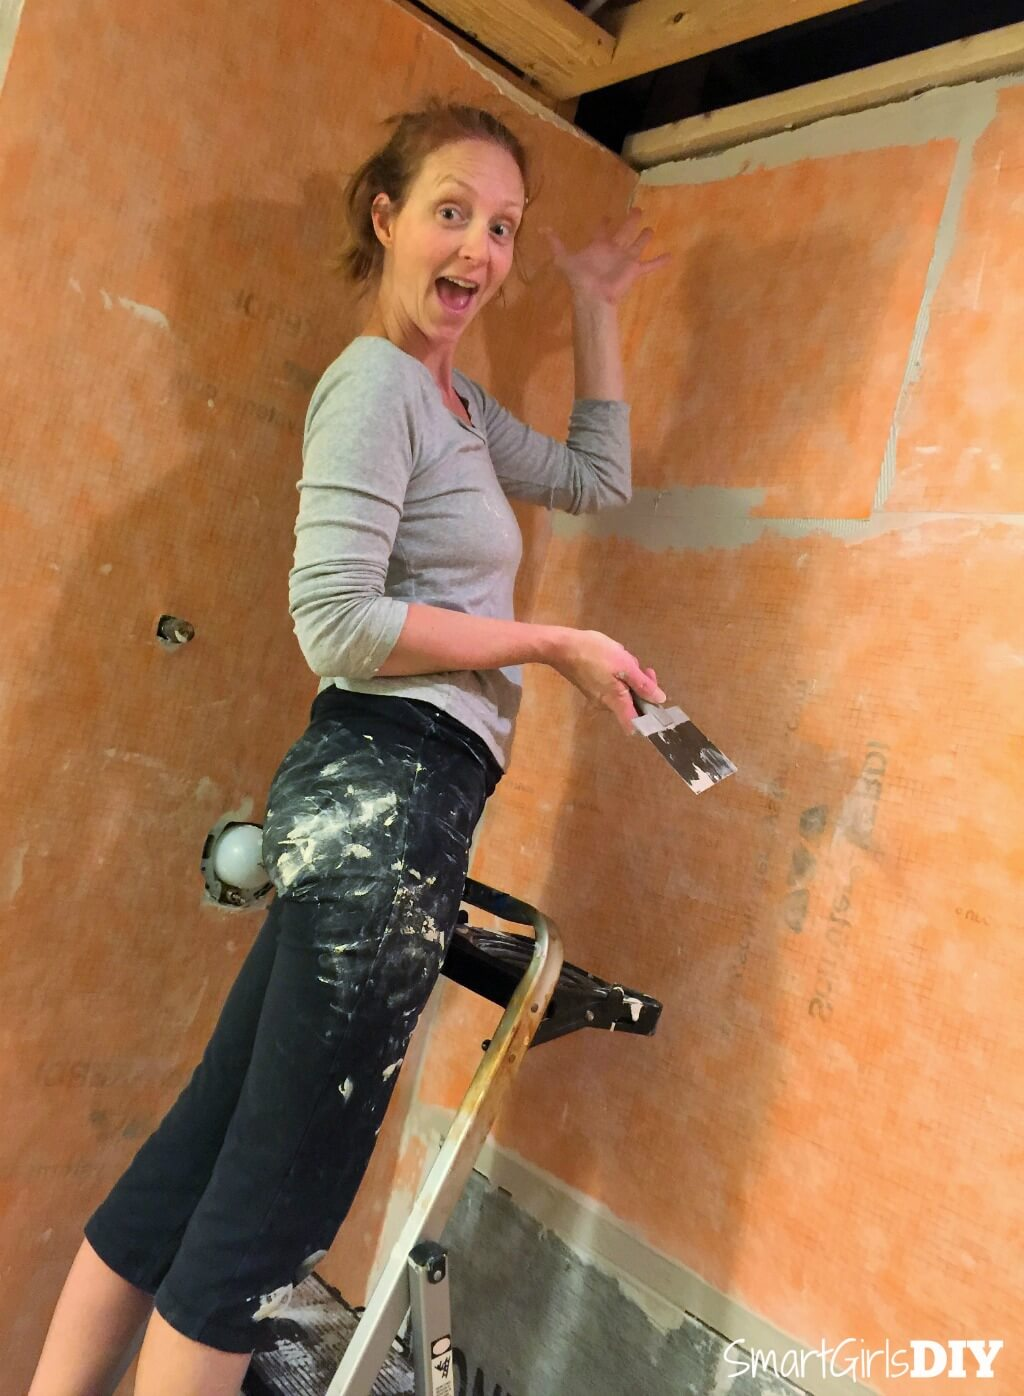 How to build your own shower with Smart Girls DIY